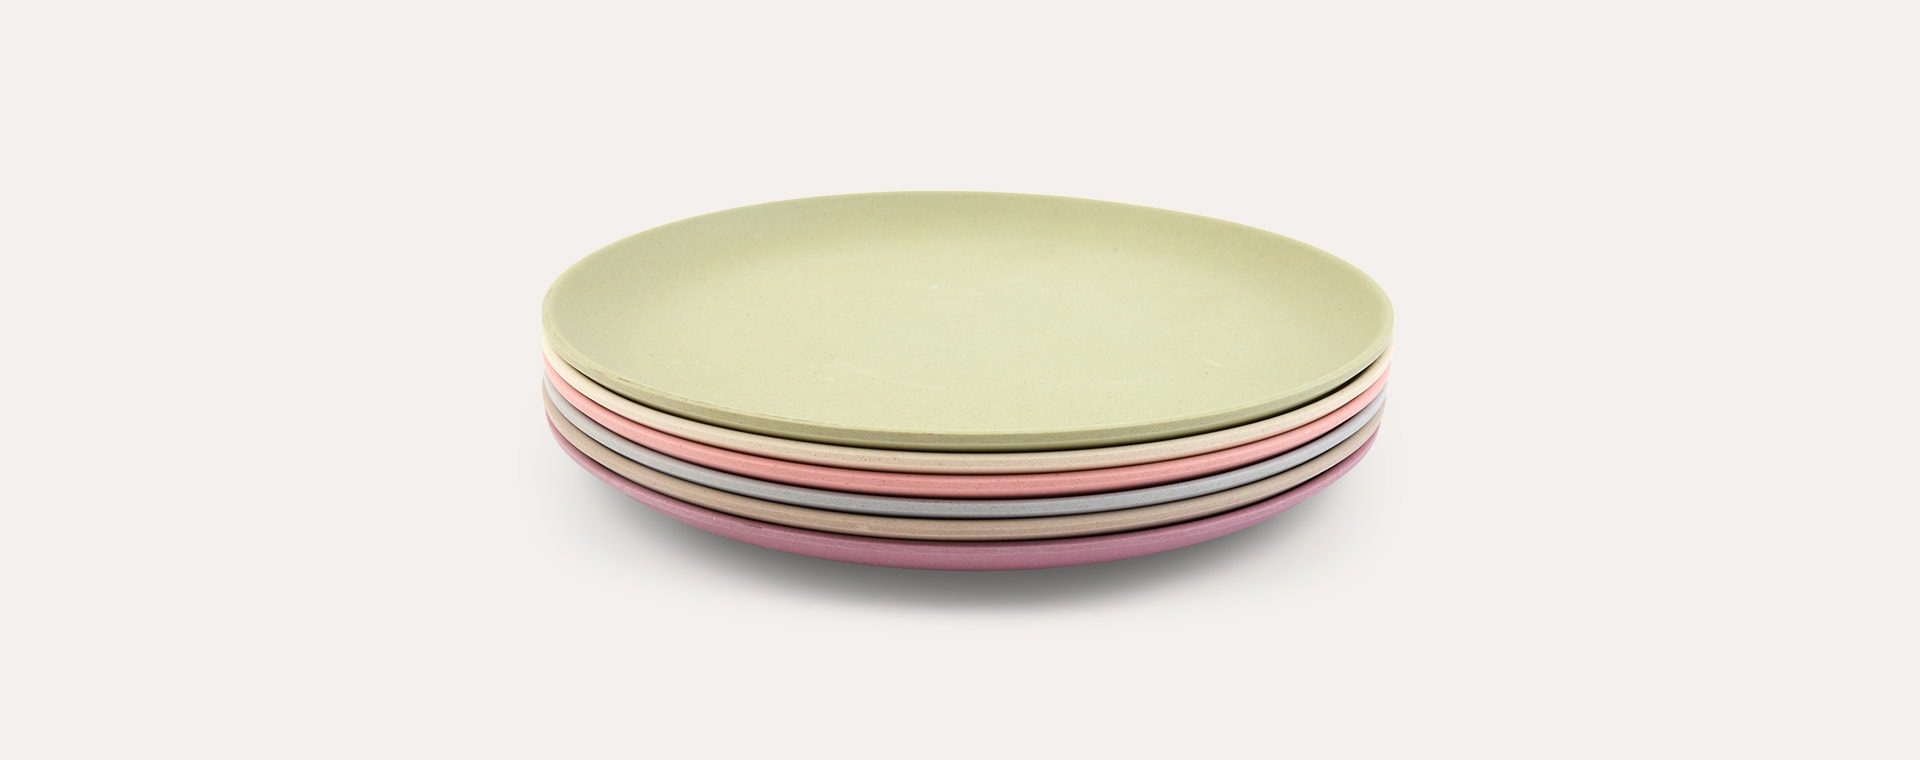 Dawn Zuperzozial Small Plates Set Of 6